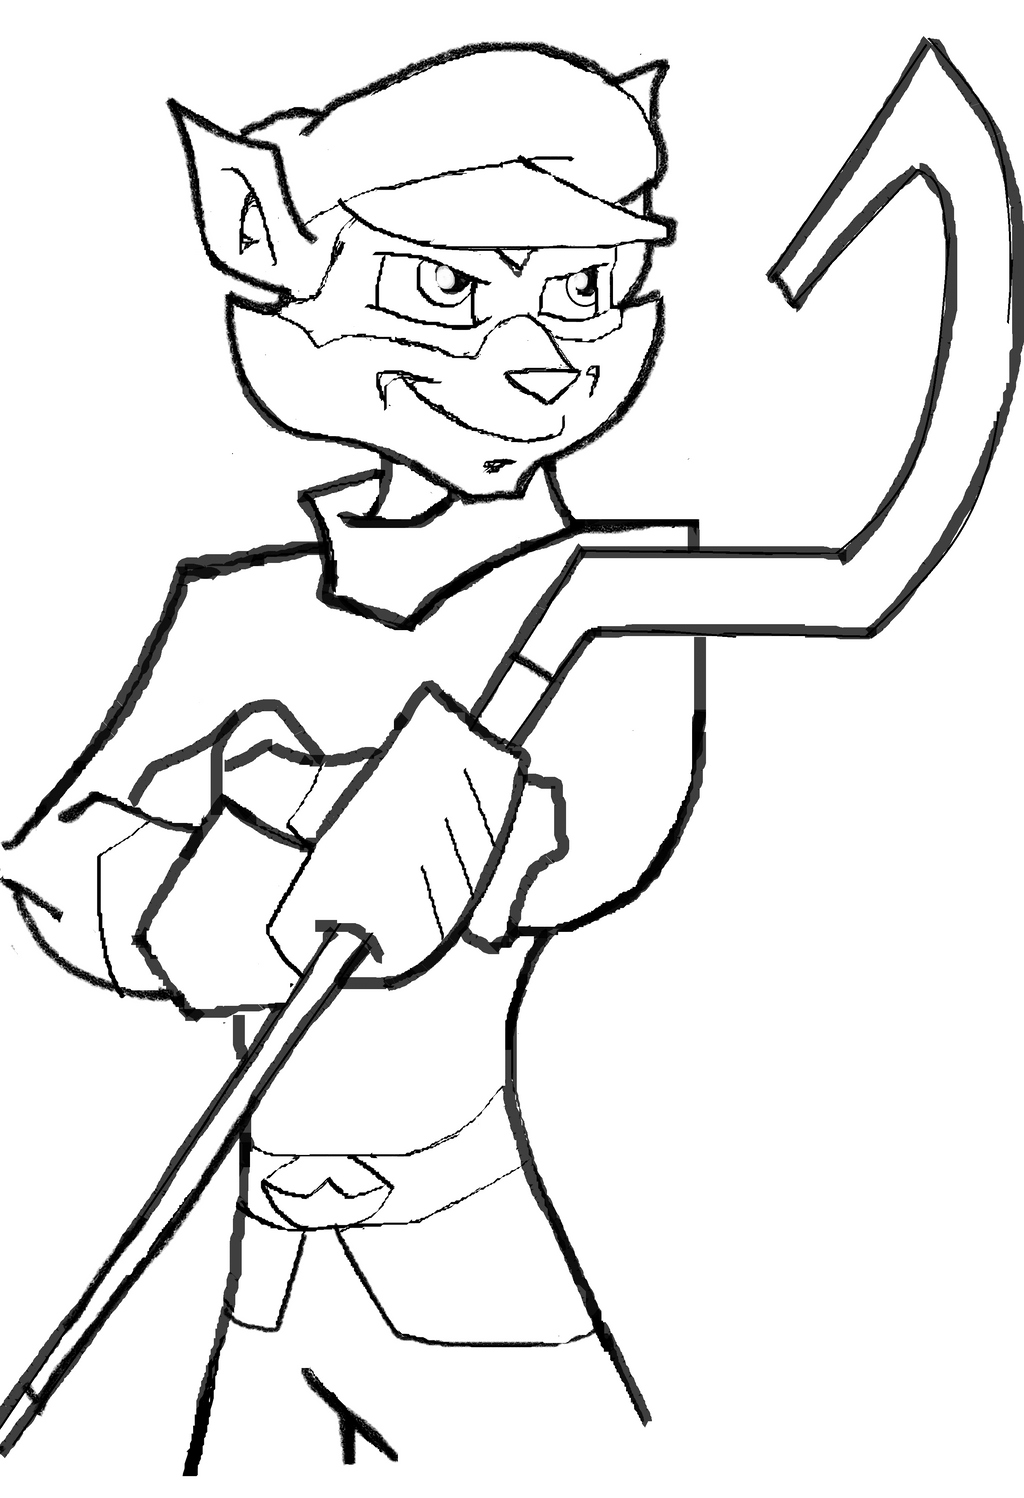 Sly Cooper Coloring Pages Sketch Coloring Page Sly Cooper Coloring Pages